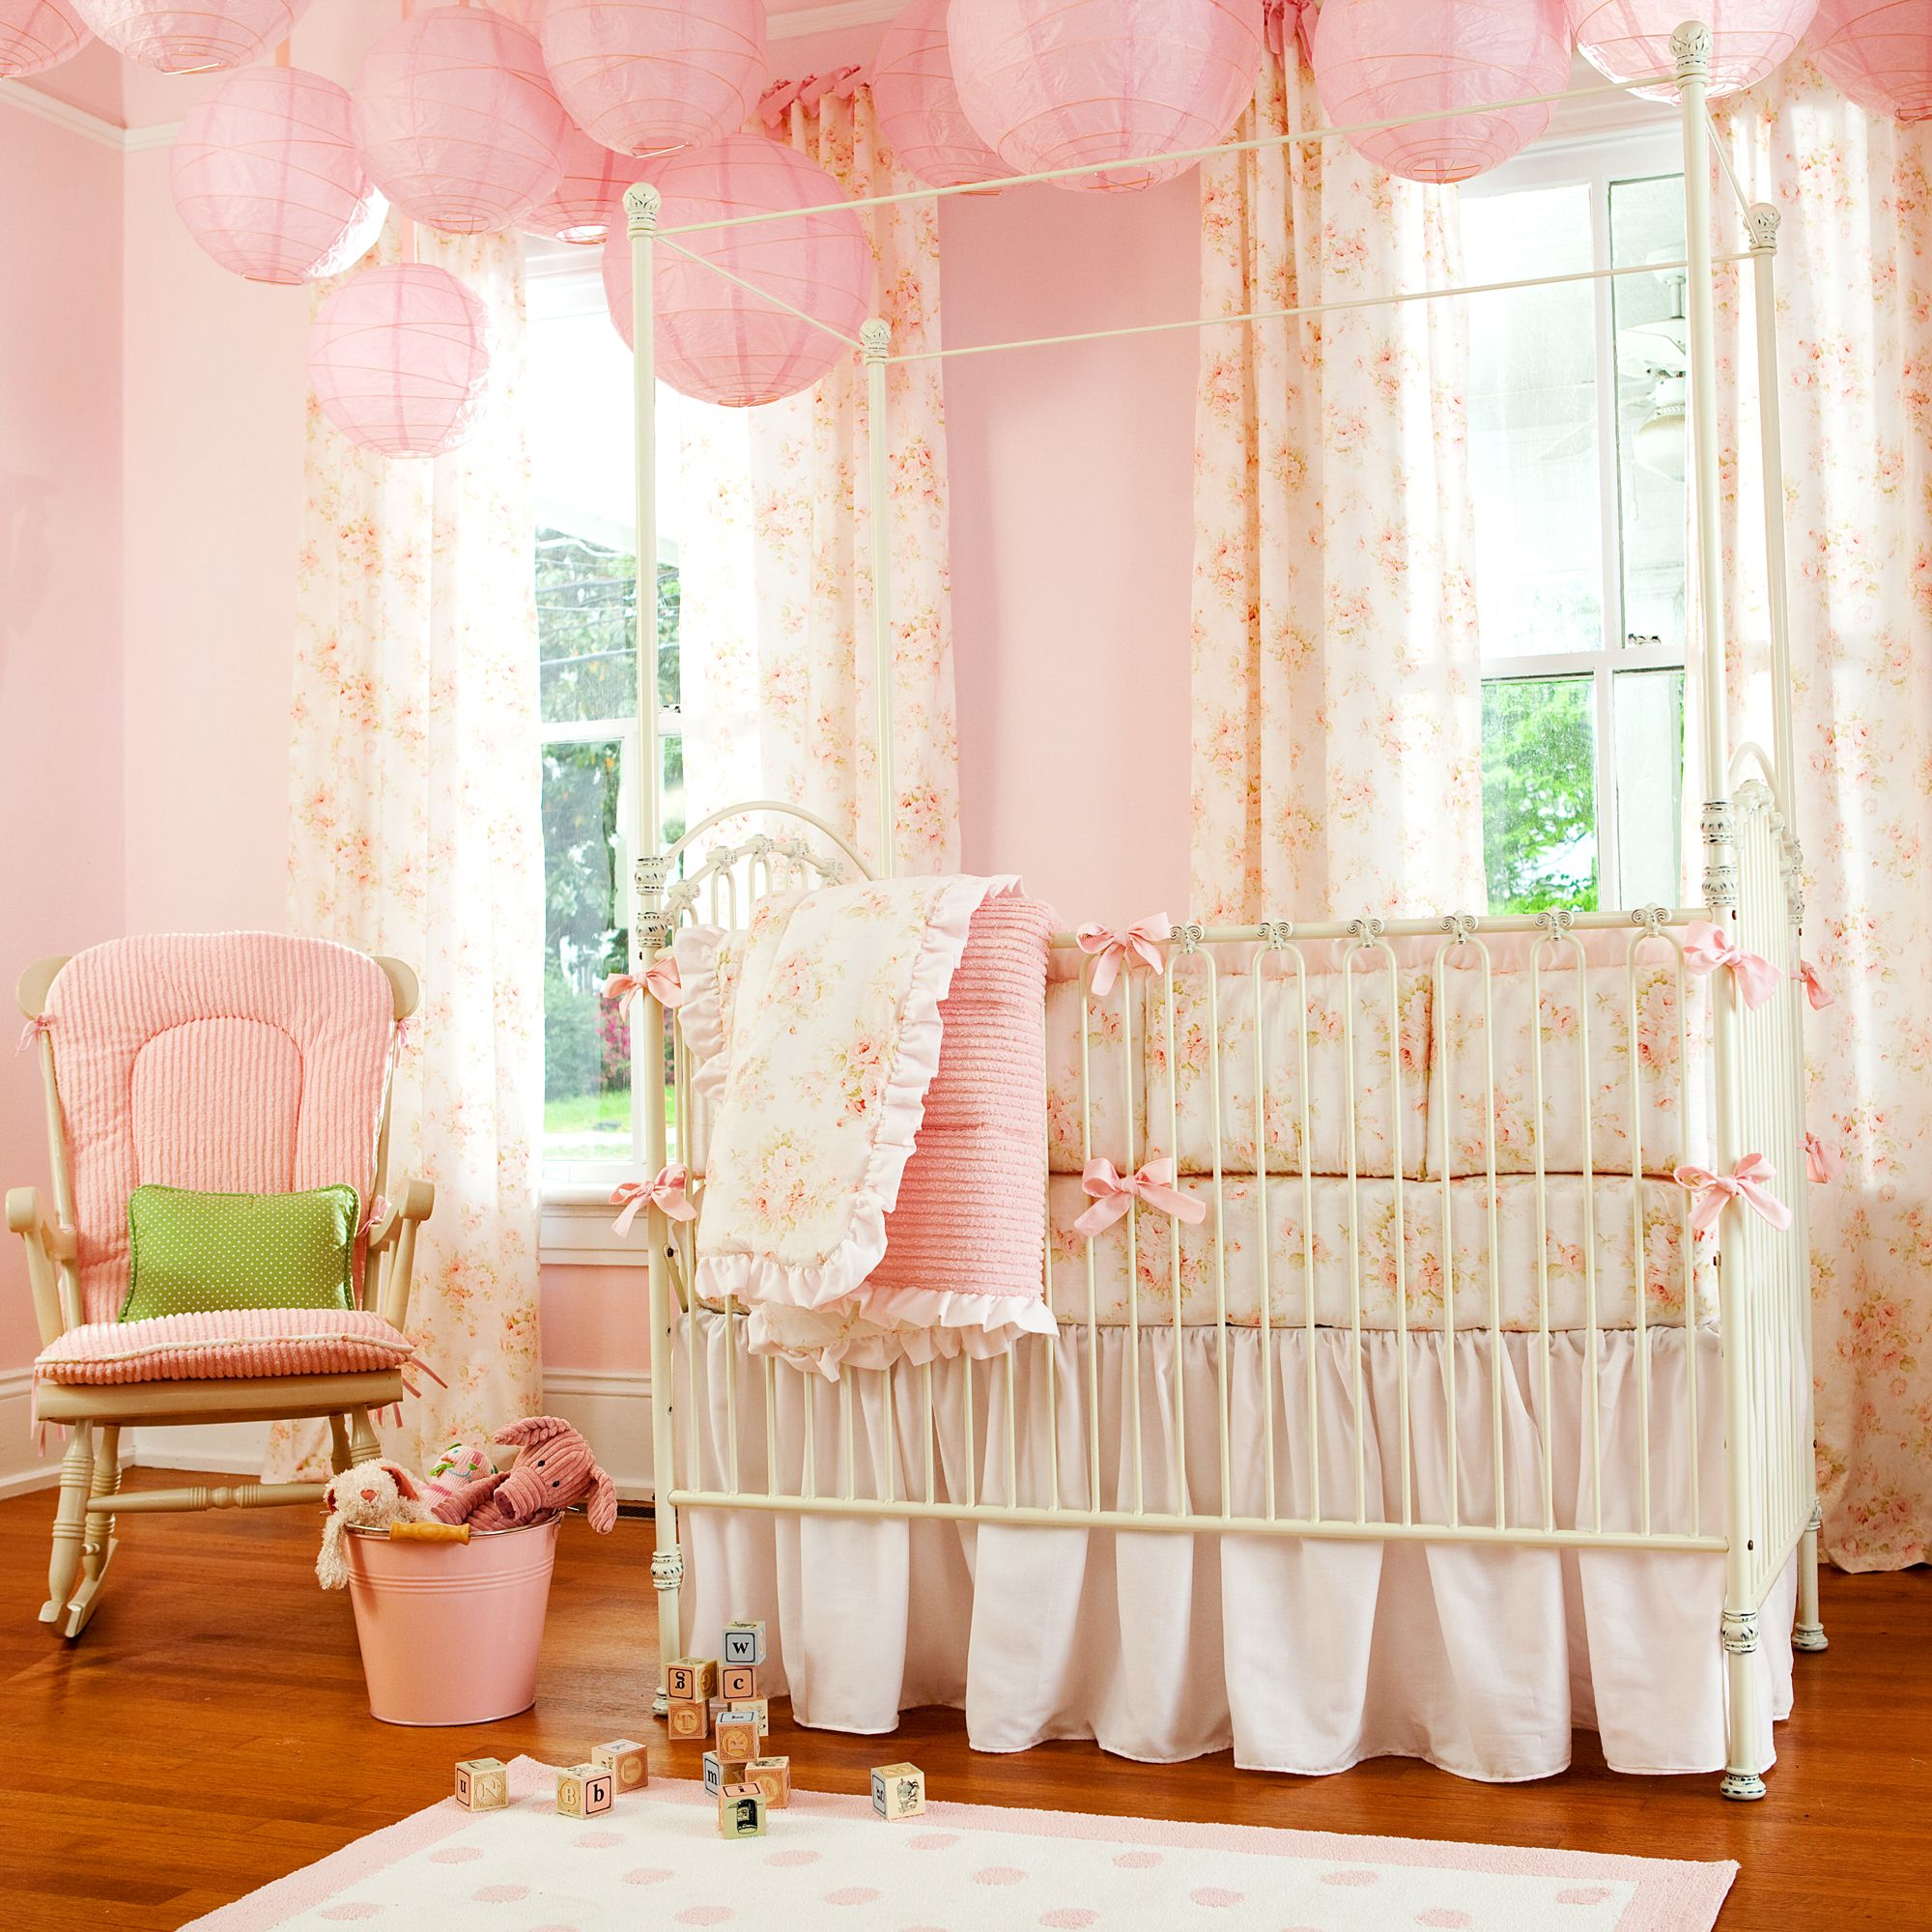 Shabby Chenille Baby Bedding Collection Crib Bedding Girl Baby Crib Bedding Sets Shabby Chic Nursery